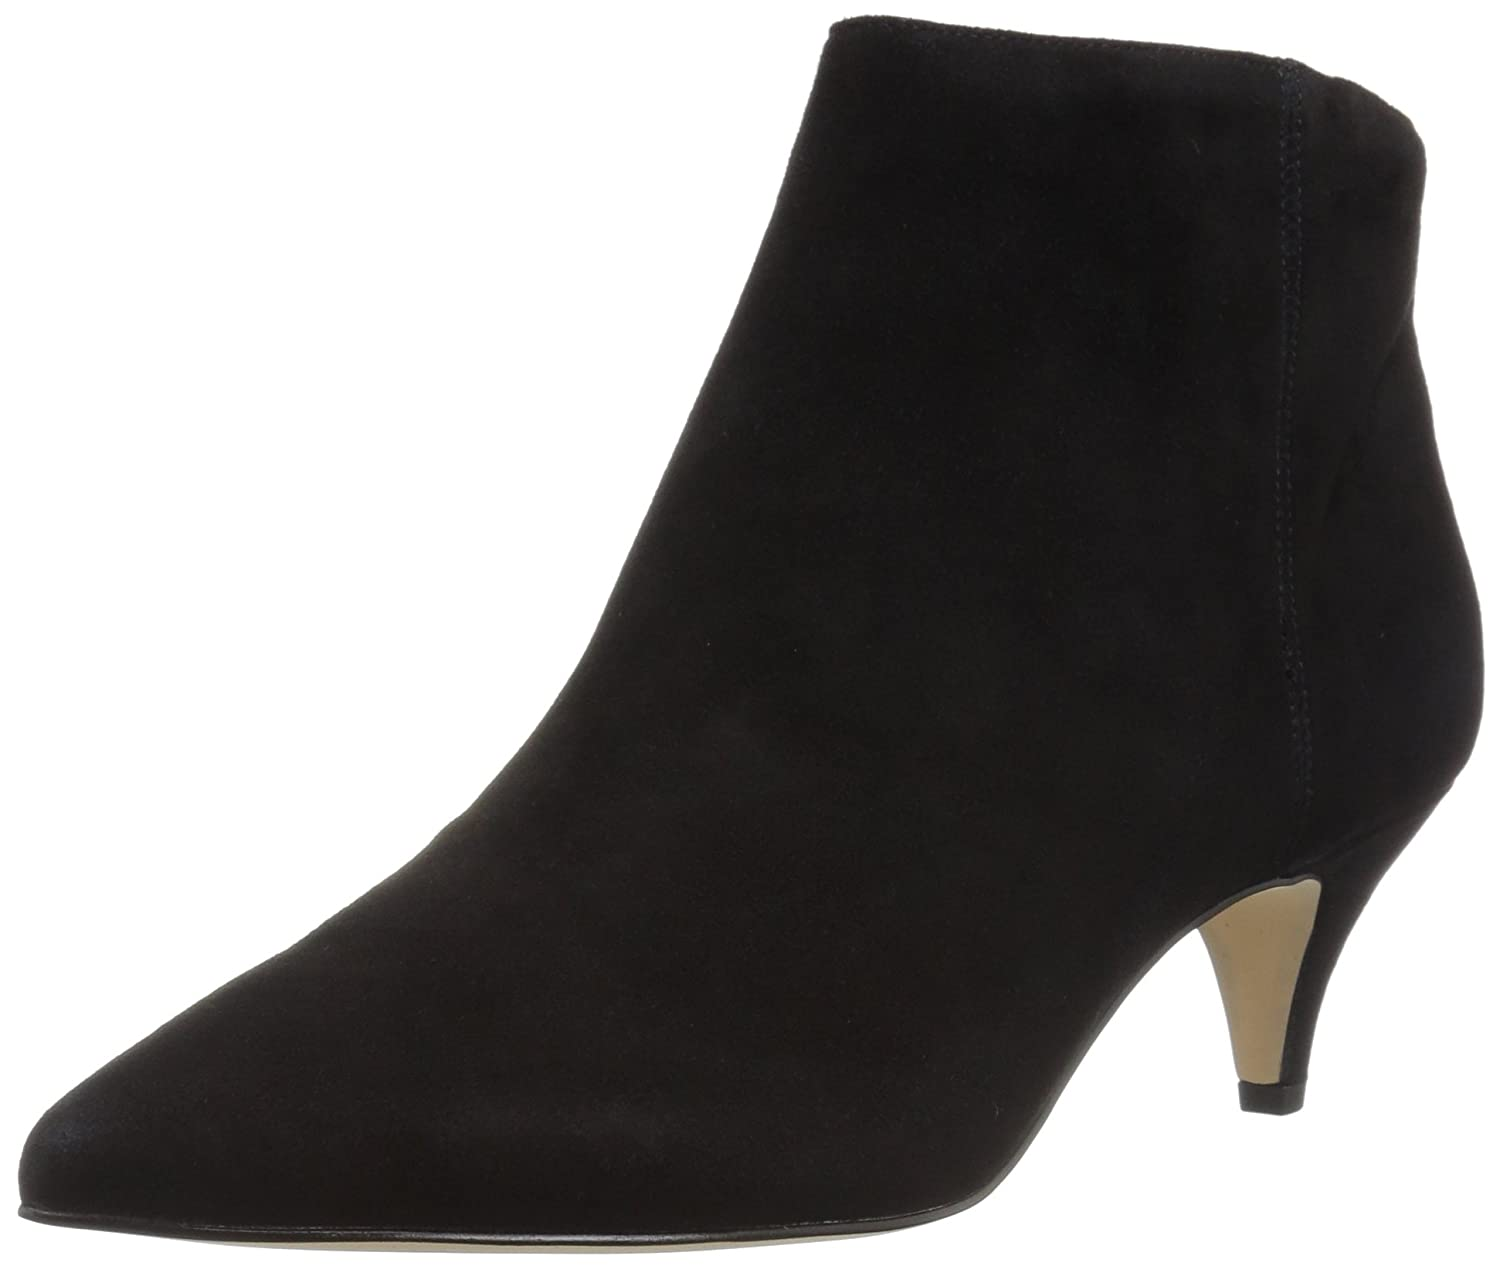 Sam Edelman Women's Kinzey Fashion Boot B06XBS84DN 6 B(M) US|Black Suede